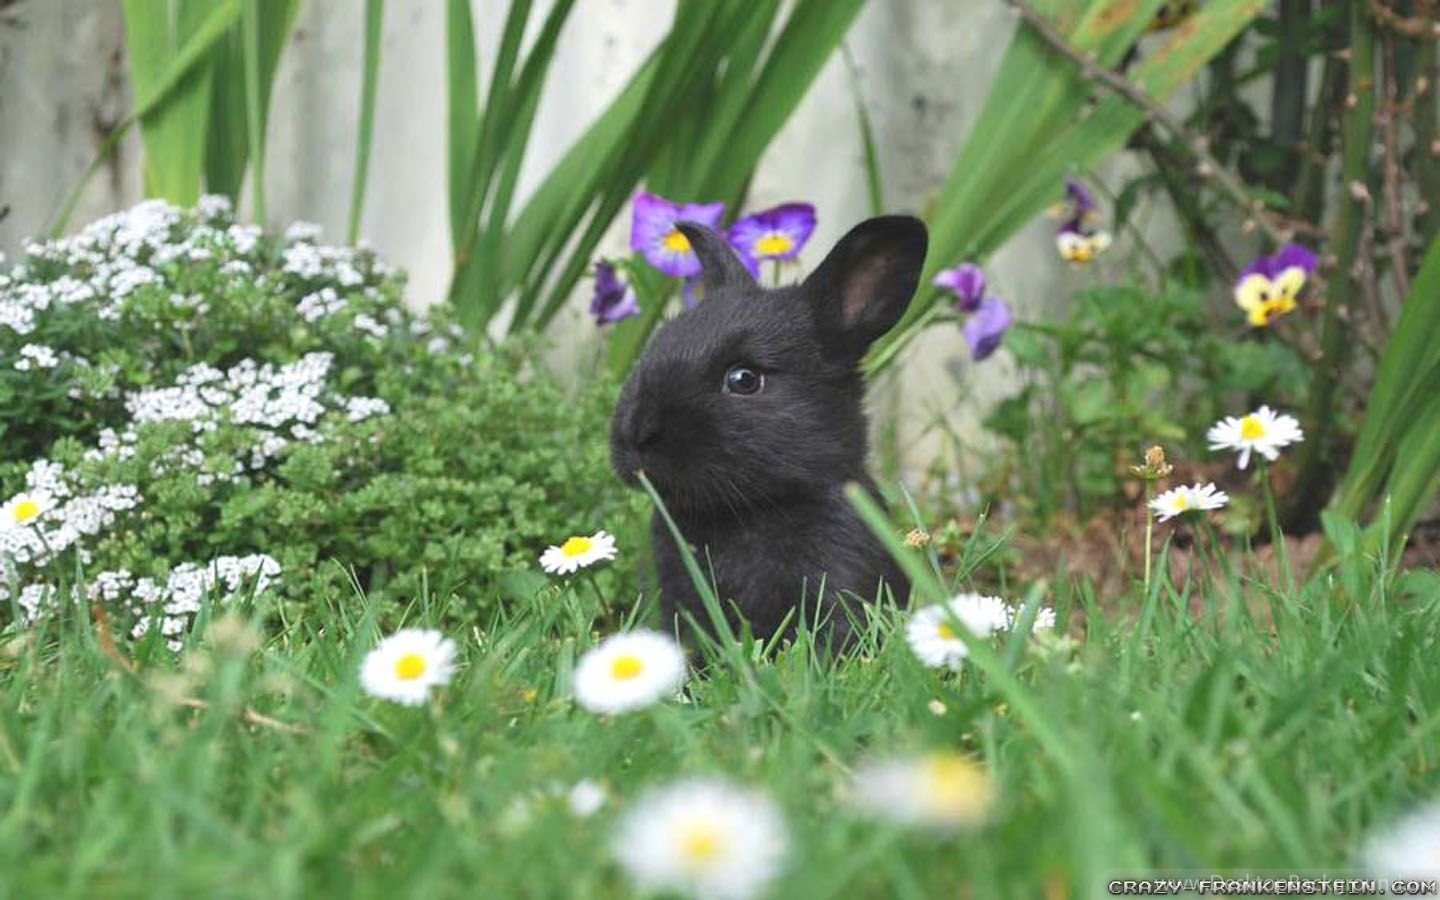 To acquire Animals springtime wallpaper picture trends